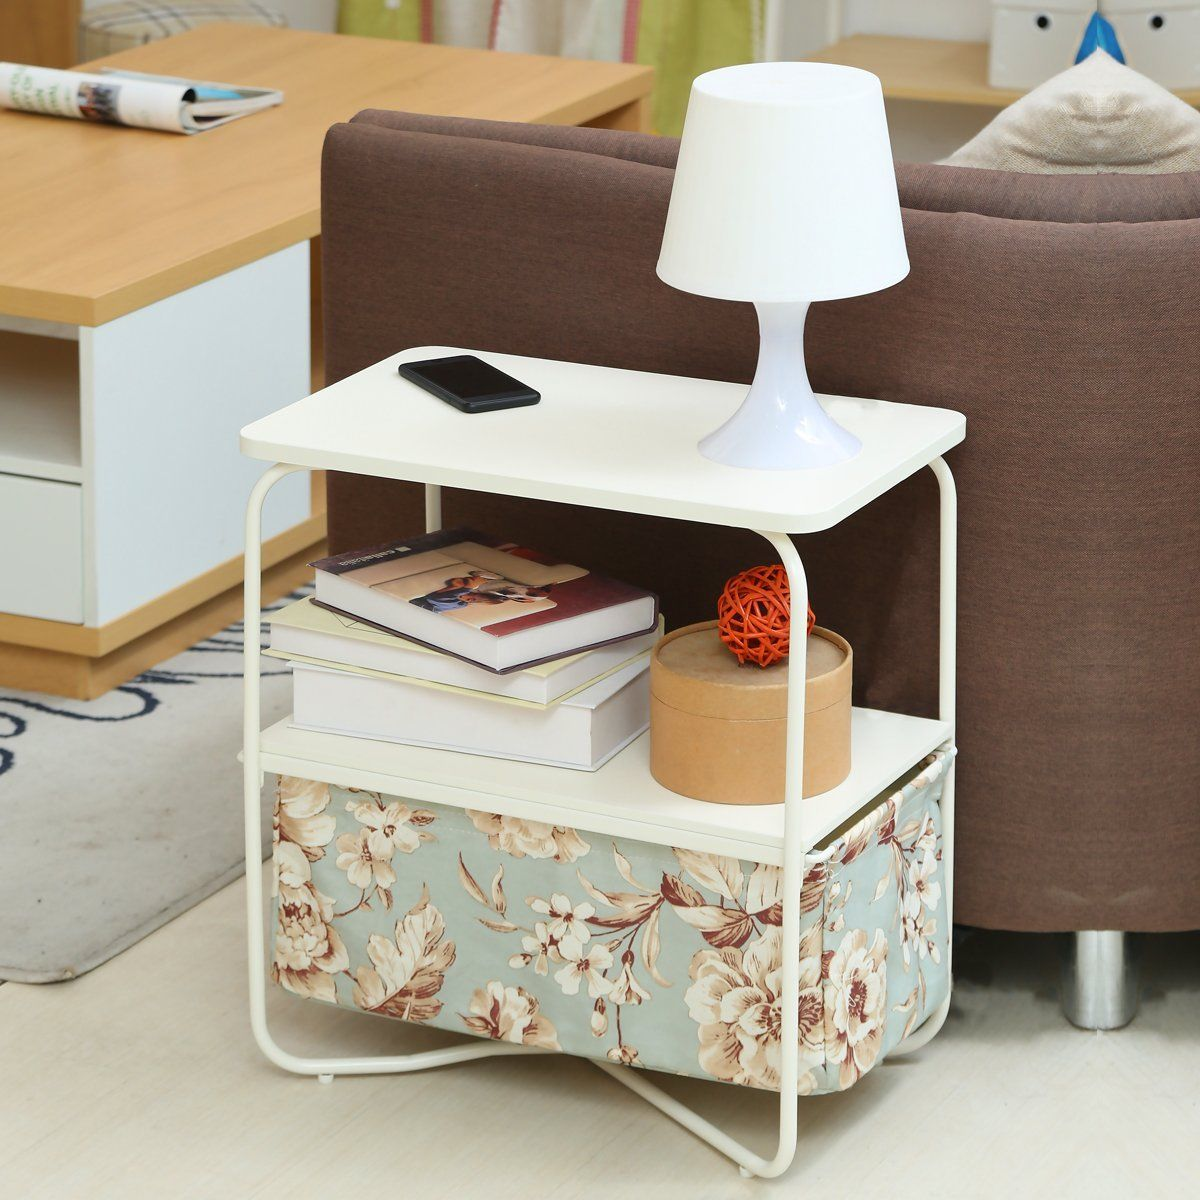 3 Tier End table Nightstand Side Table with Removable Canvas Storage Bin  For Living Room, Bed Room or Small Spaces